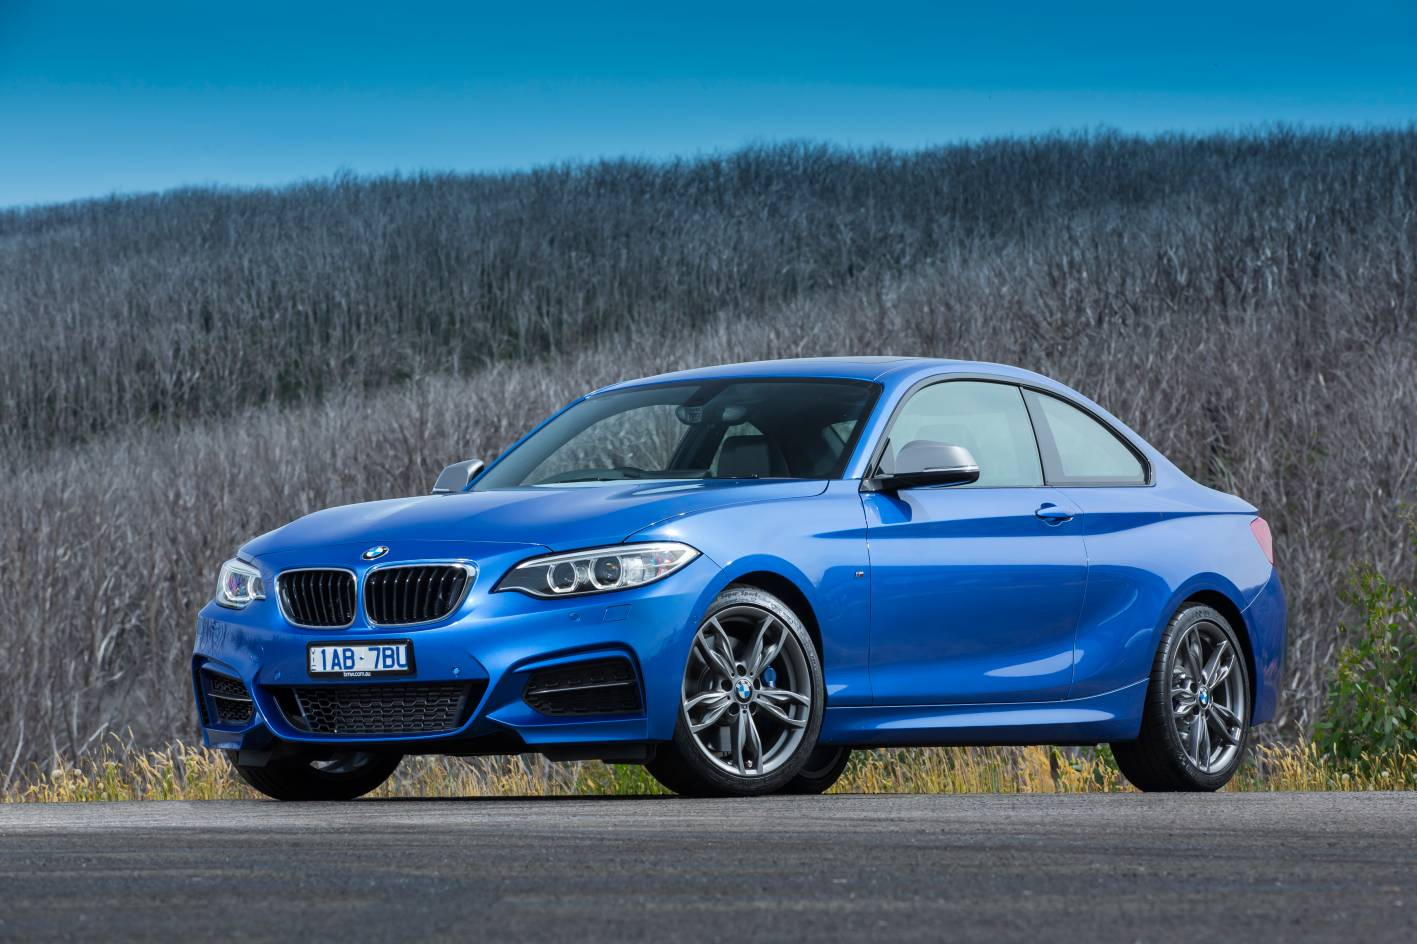 Review - BMW M235i Review and Road Test